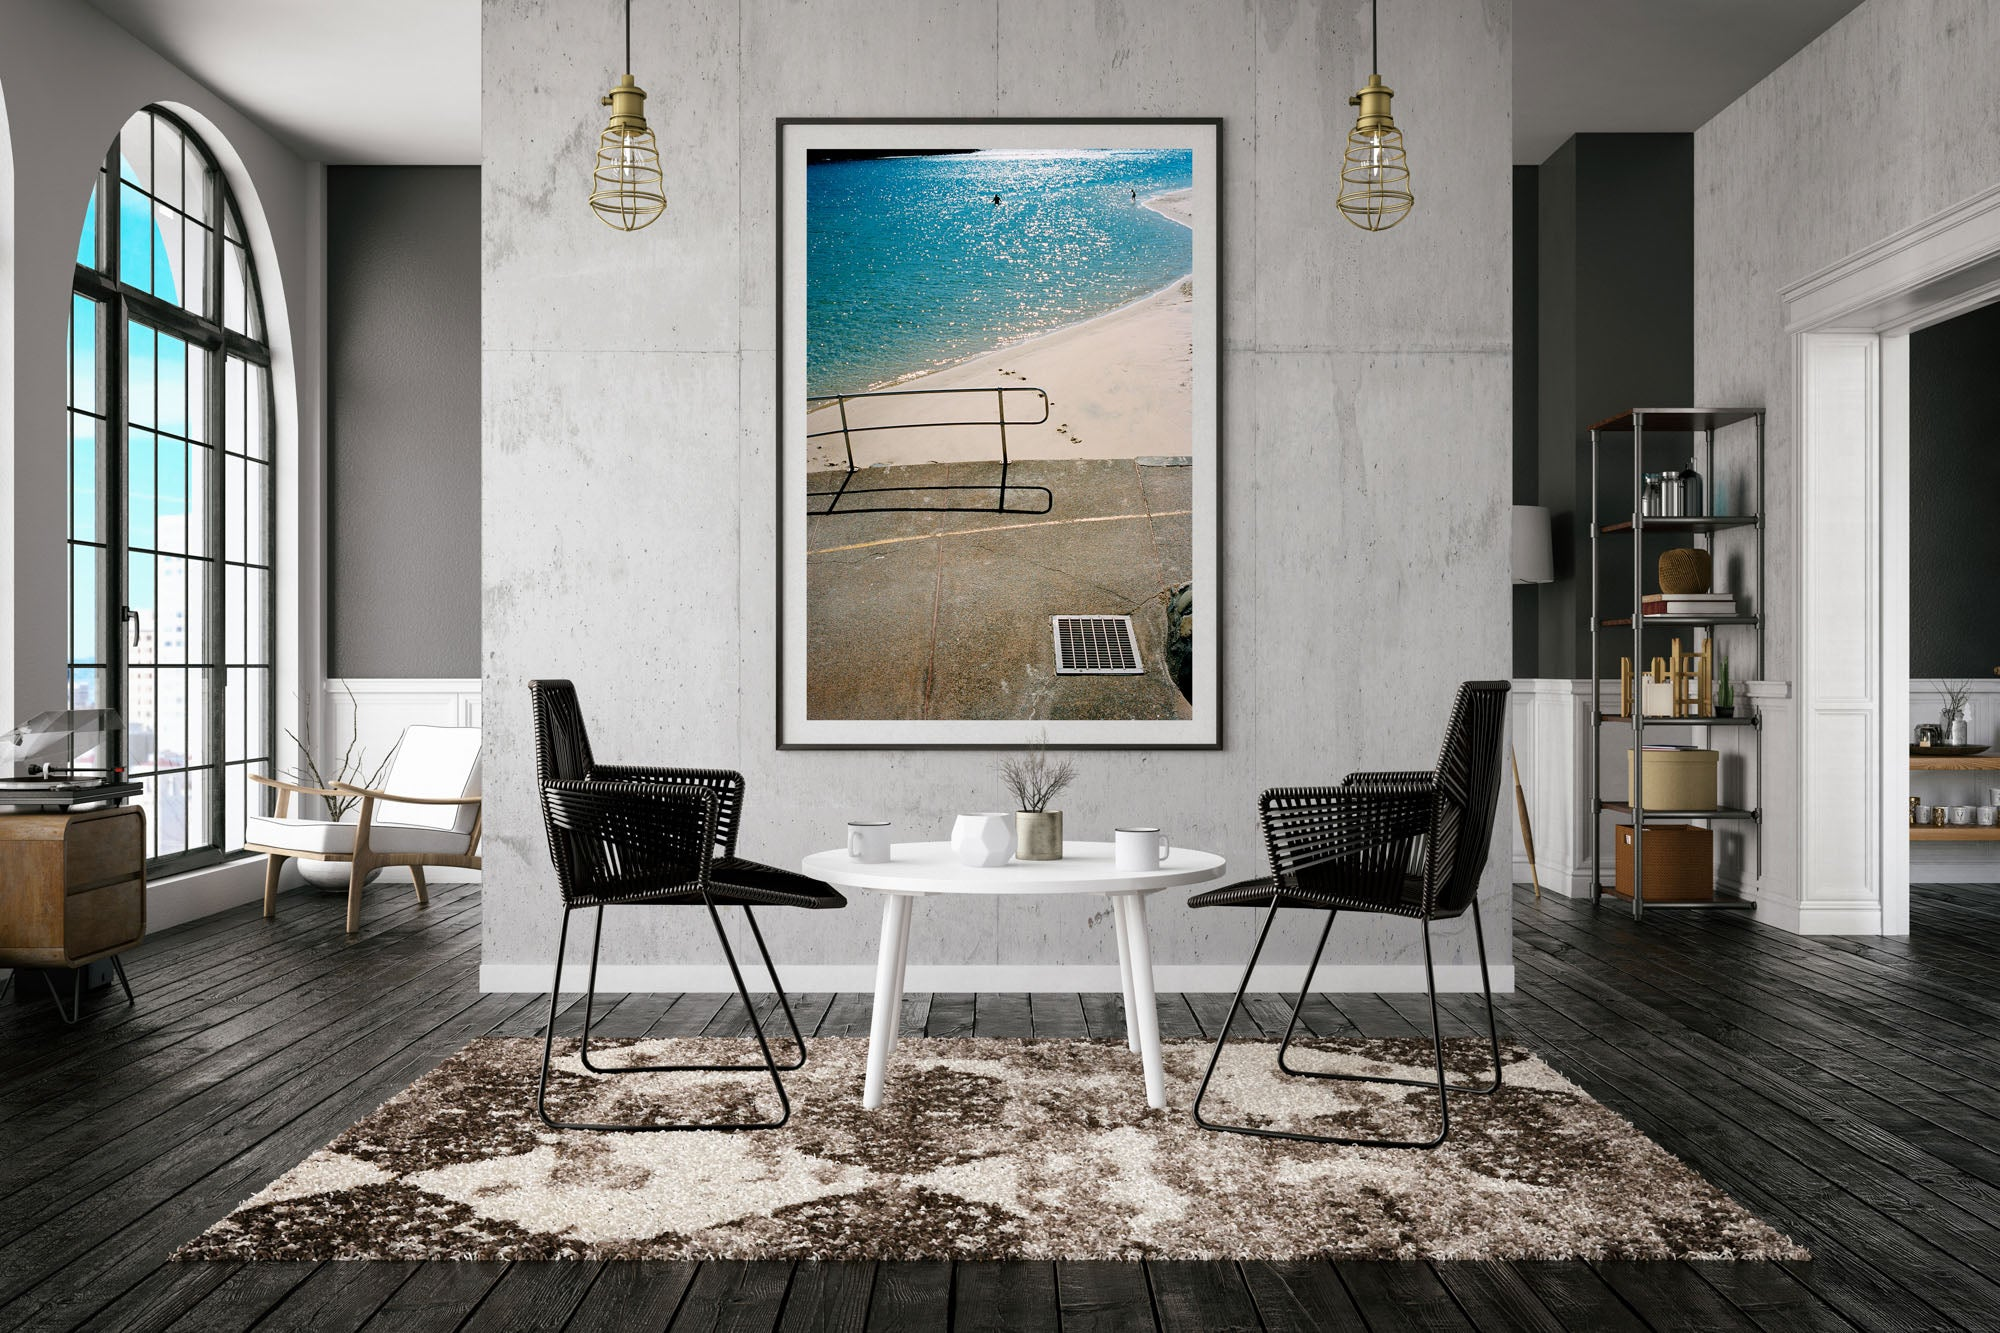 """A photograph of a blue river with people swimming, a pavement & rallying in the foreground of the photo. White sand and & water. The photo is in portrait orientation."" Artwork, Prints, wall art, GoldCoast Queensland Australia, Photographic prints, Ocean Beach, Framed artwork, Beach Posters   Film photography, Vintage photo style,  Interior design, Film photography Pictures sun & surf, lounge room, footprints in the sand"